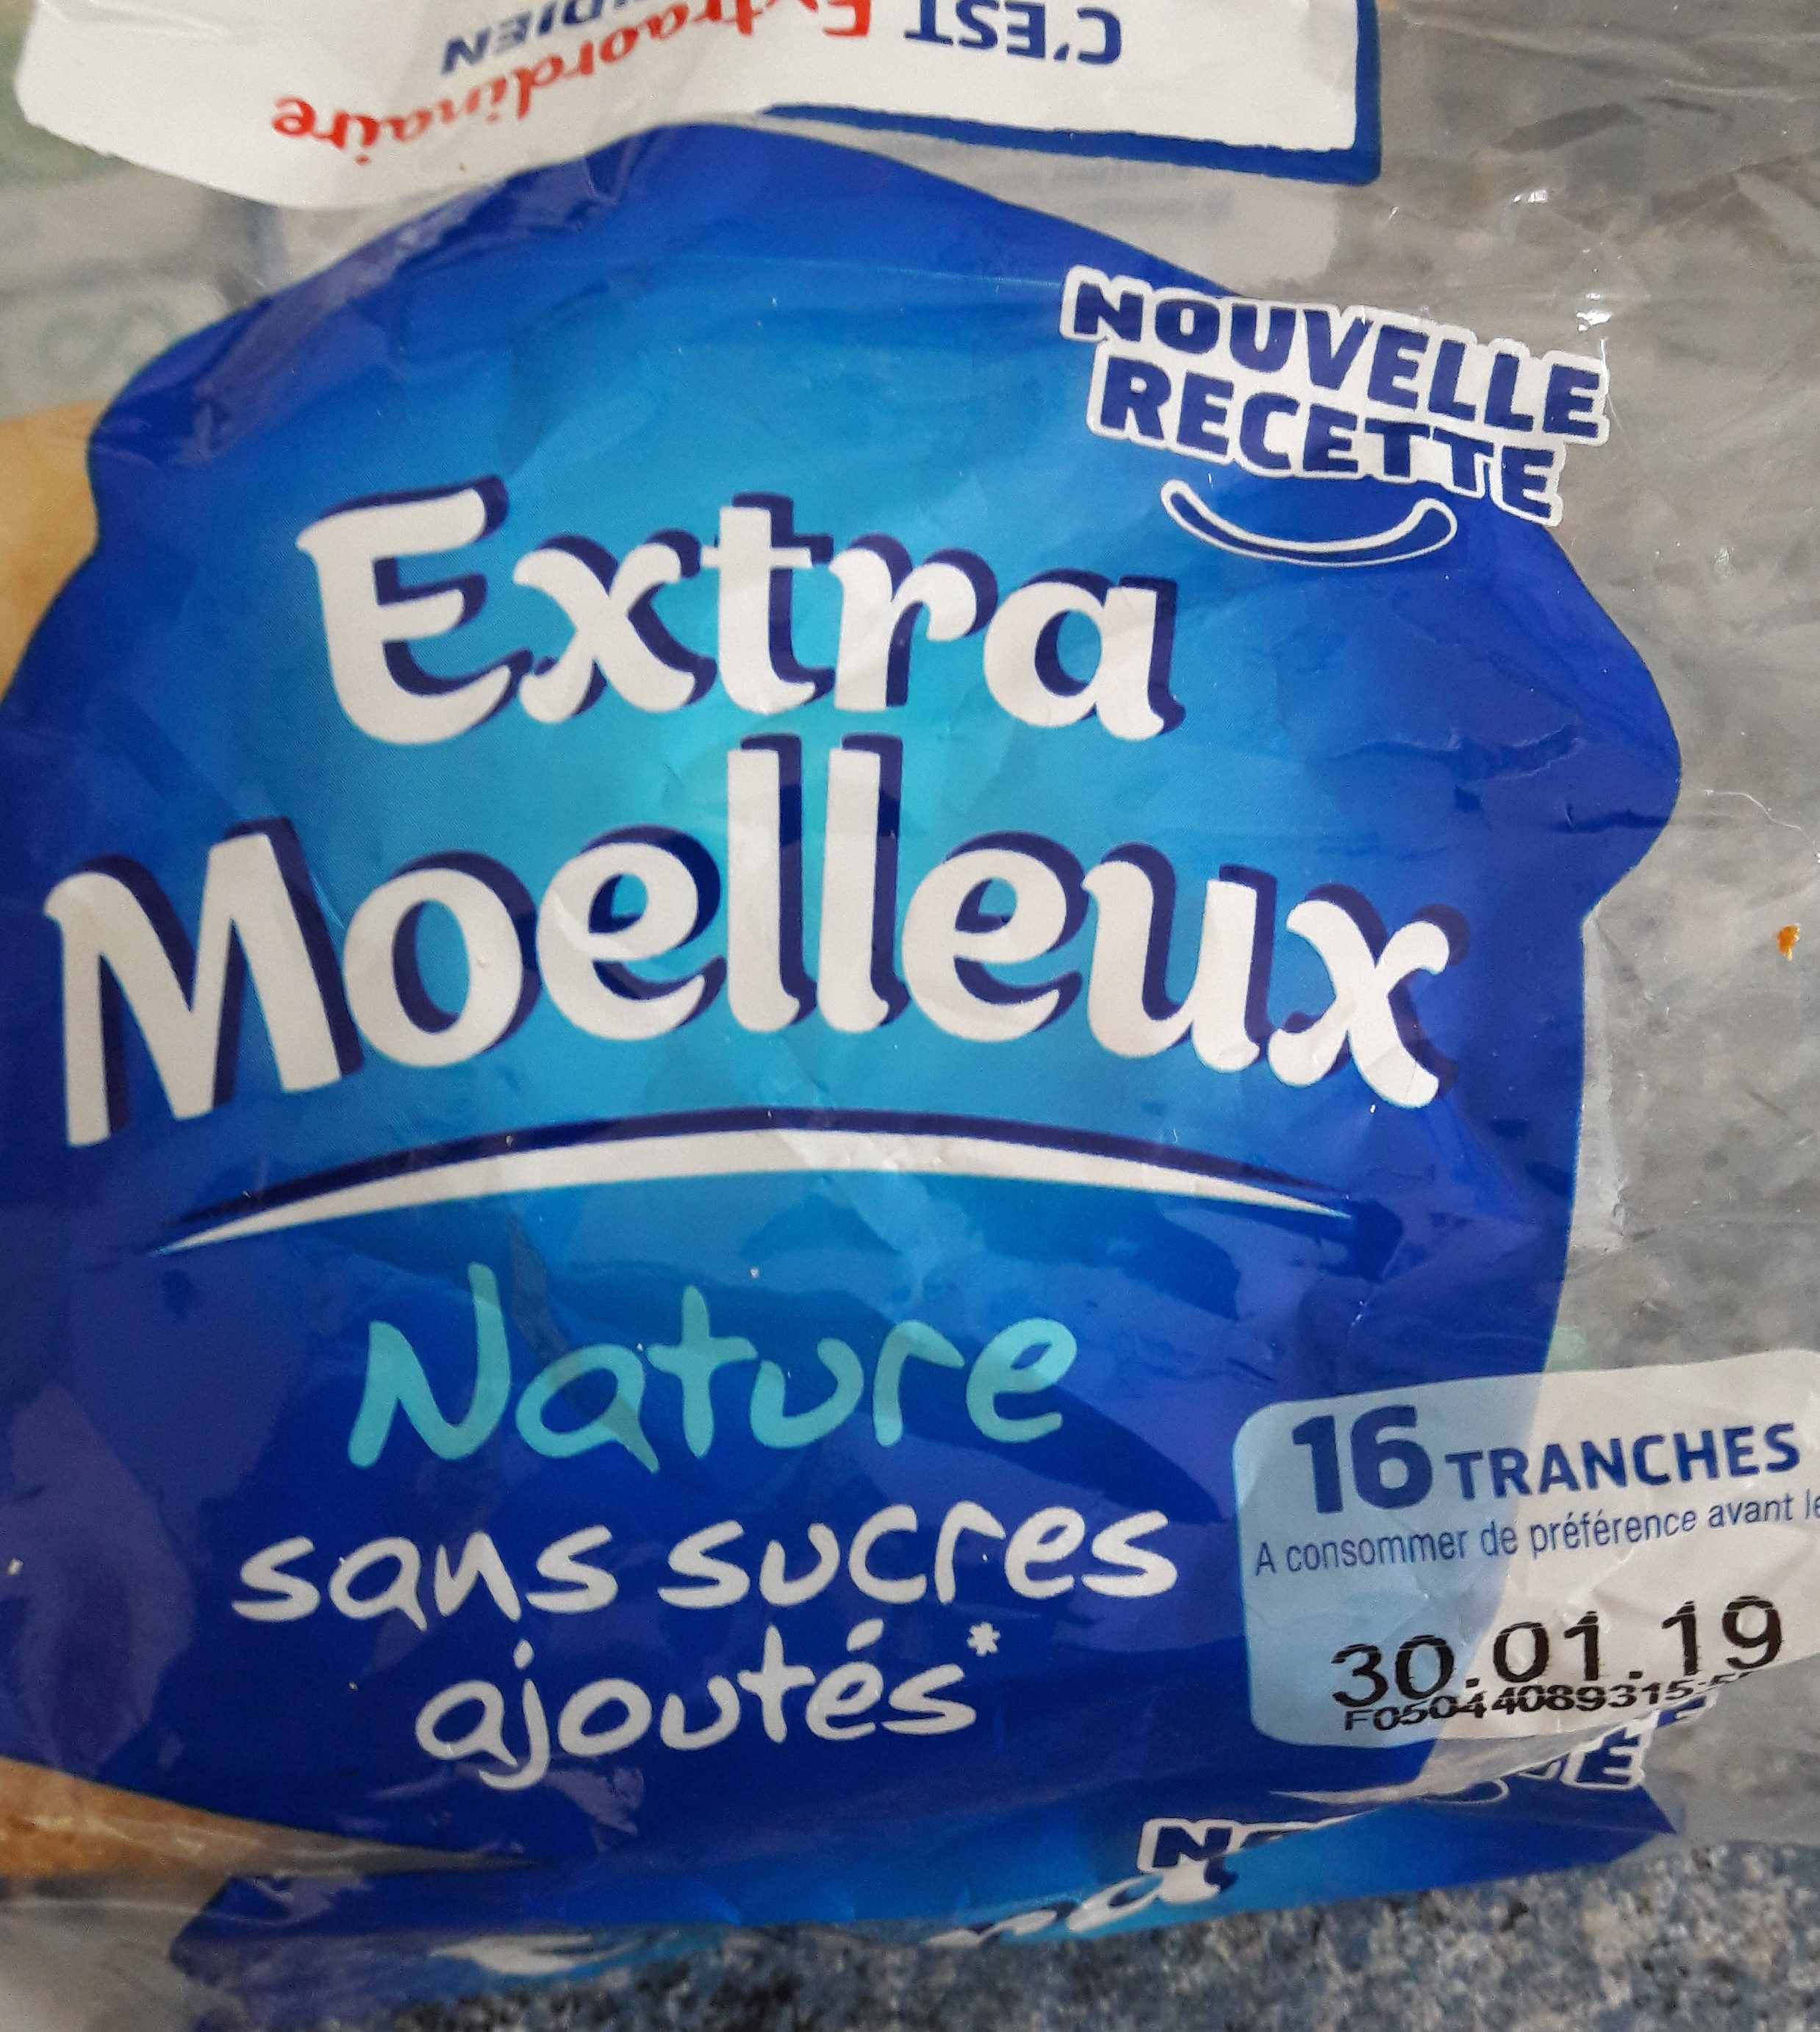 Harrys extra moelleux nature - Product - fr